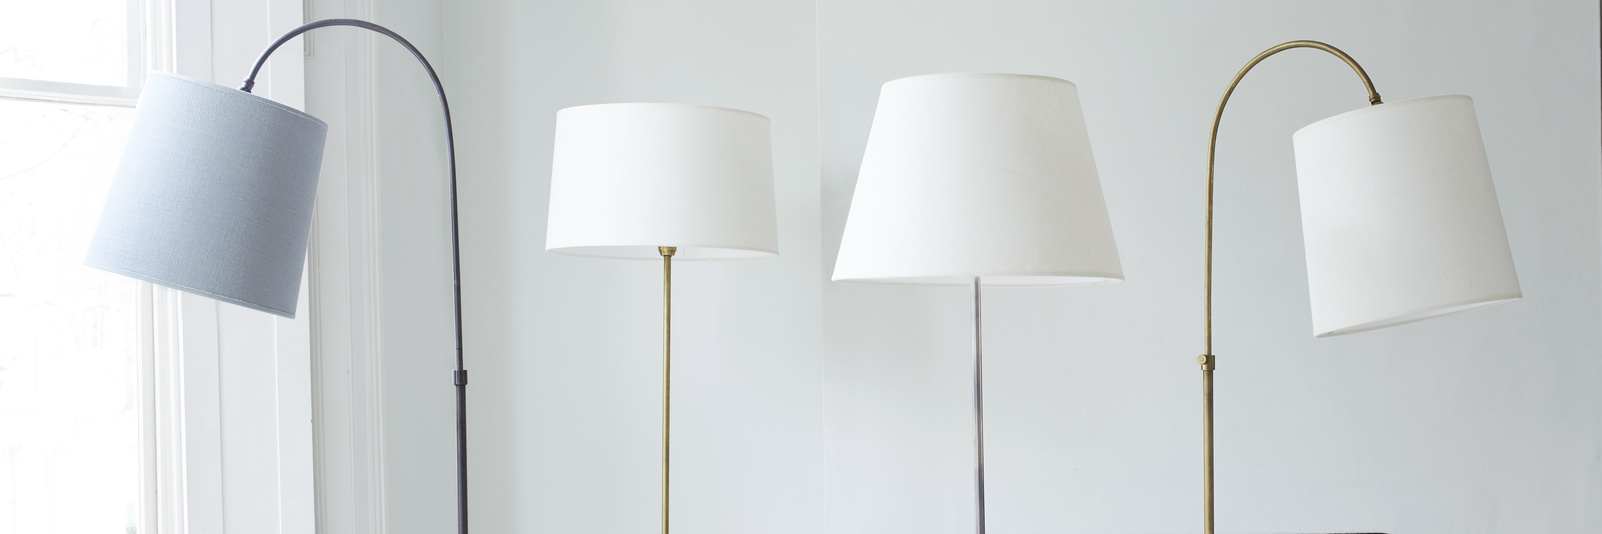 Floor lamp range